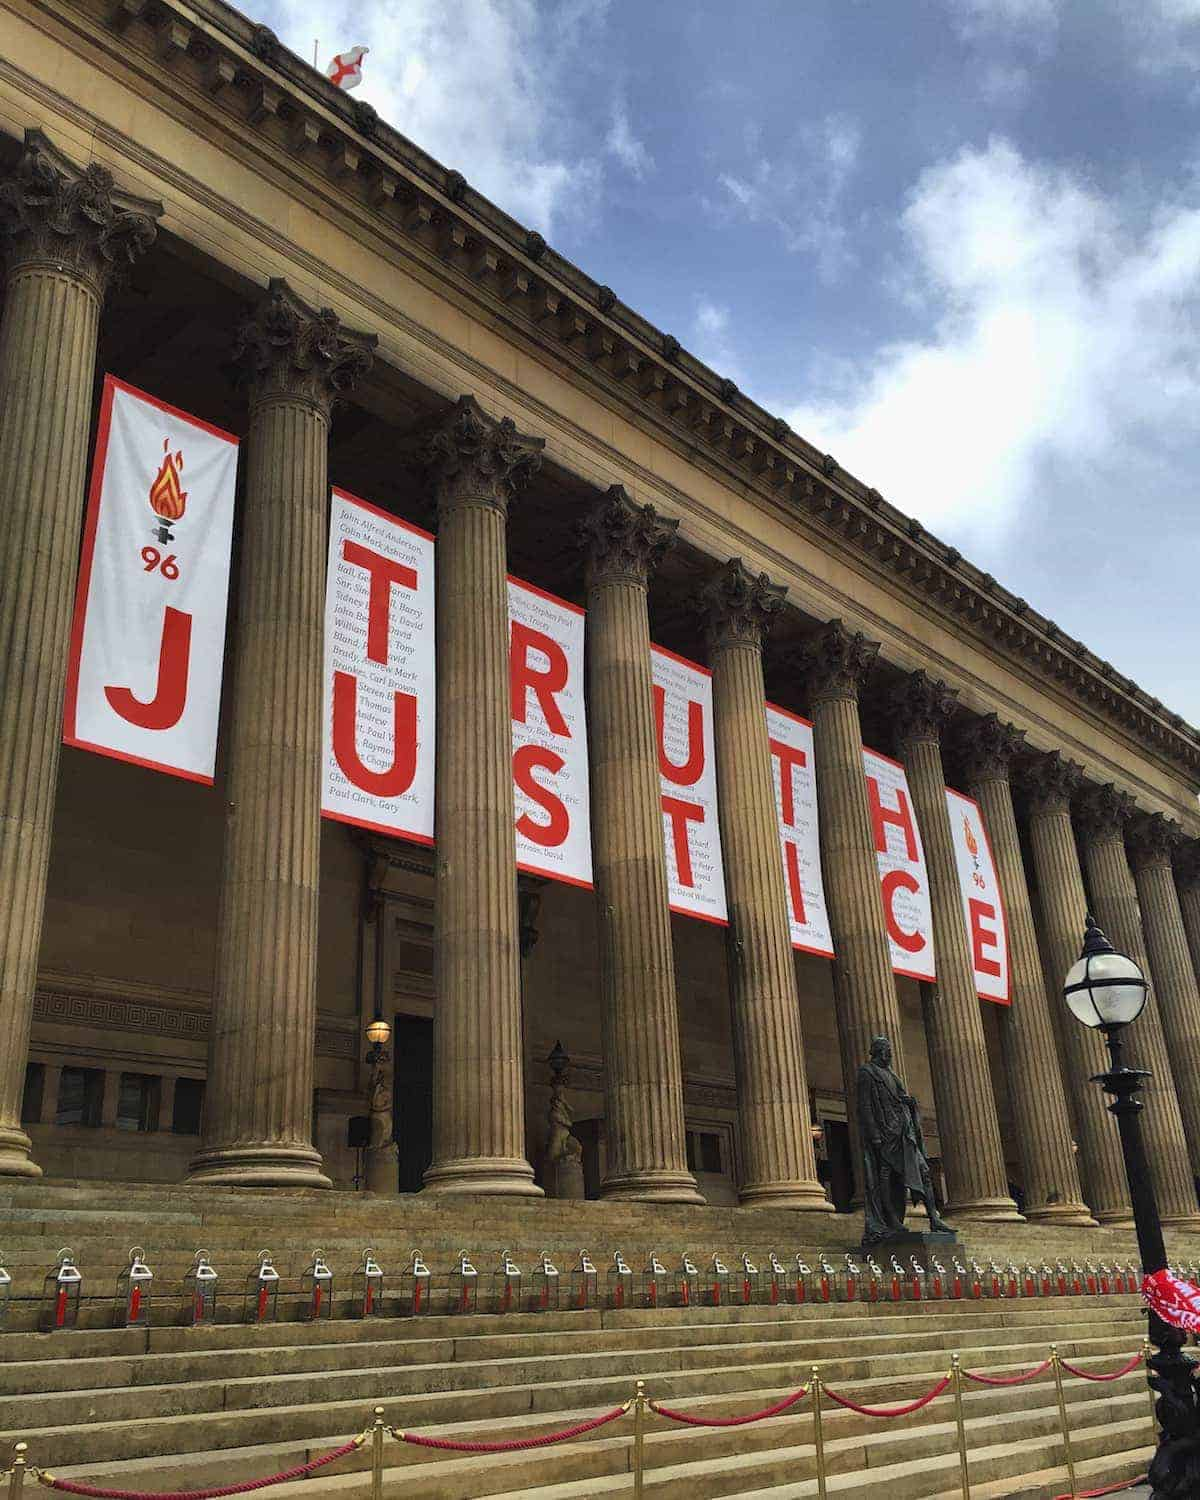 St George's Hall, Liverpool - April 26 2016 - After Hillsborough inquest verdicts (Image: Zack Goldman)